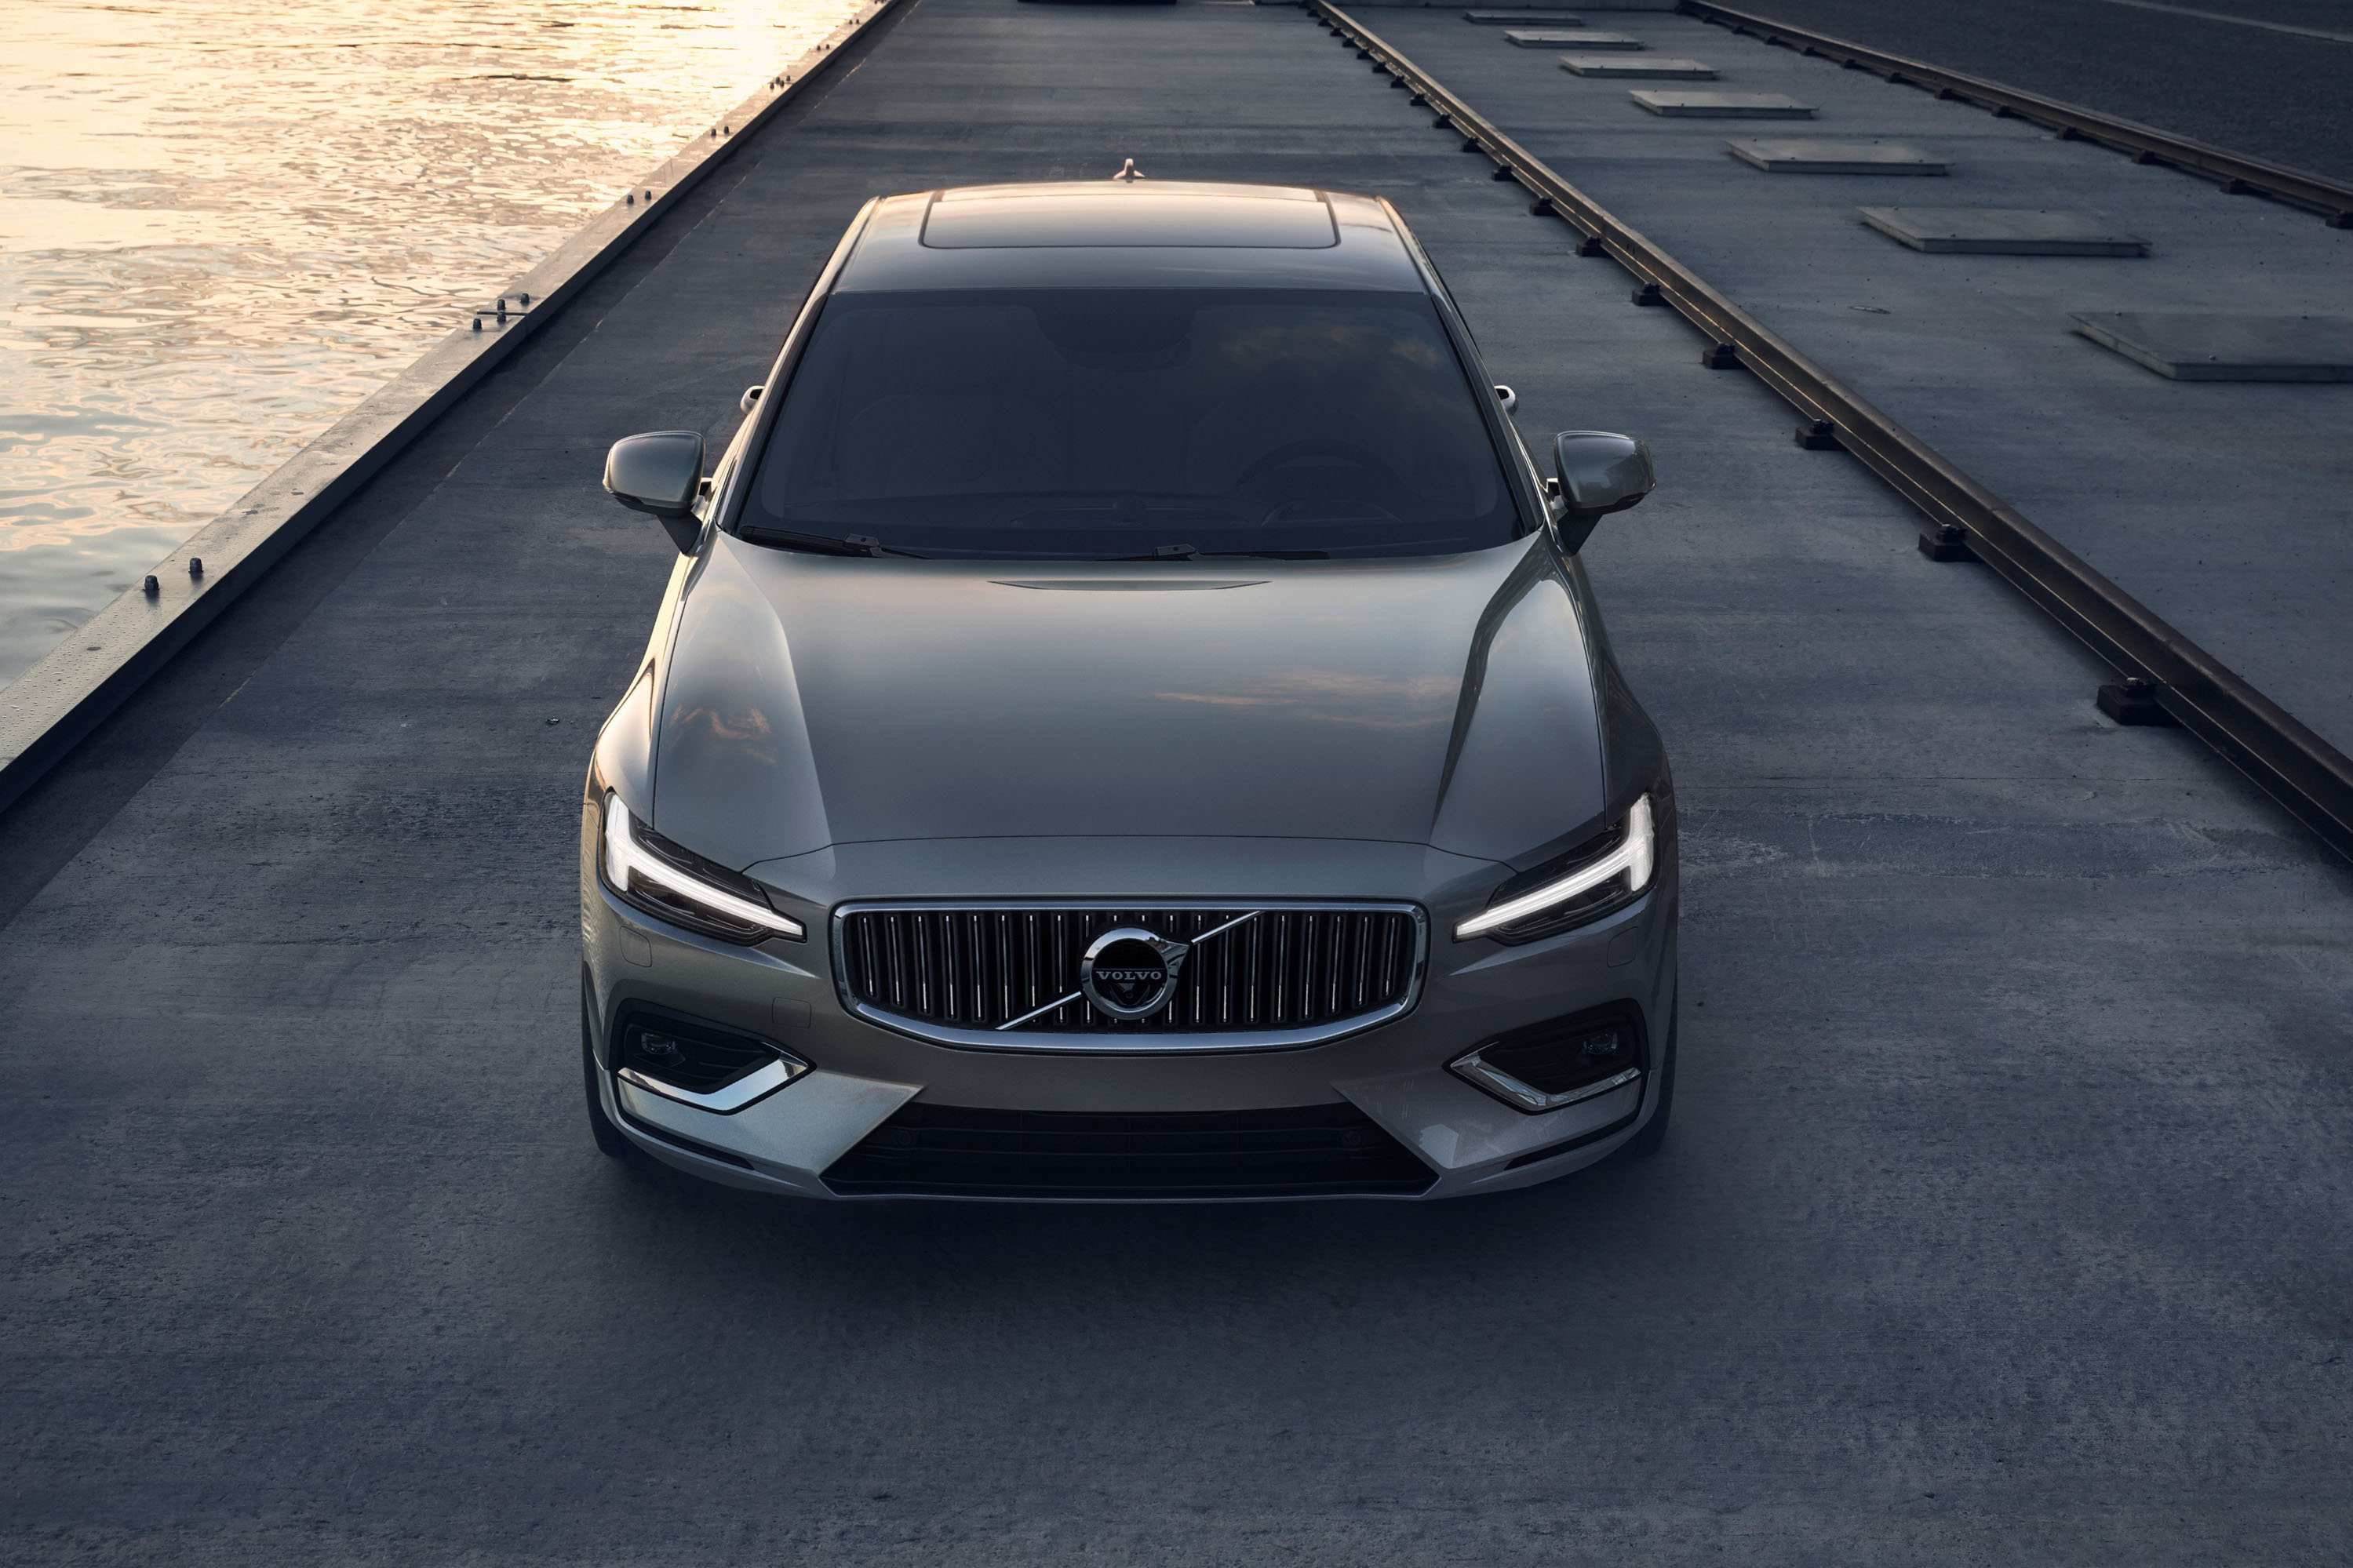 50 Best Review Volvo Modellar 2019 Rumor Picture for Volvo Modellar 2019 Rumor